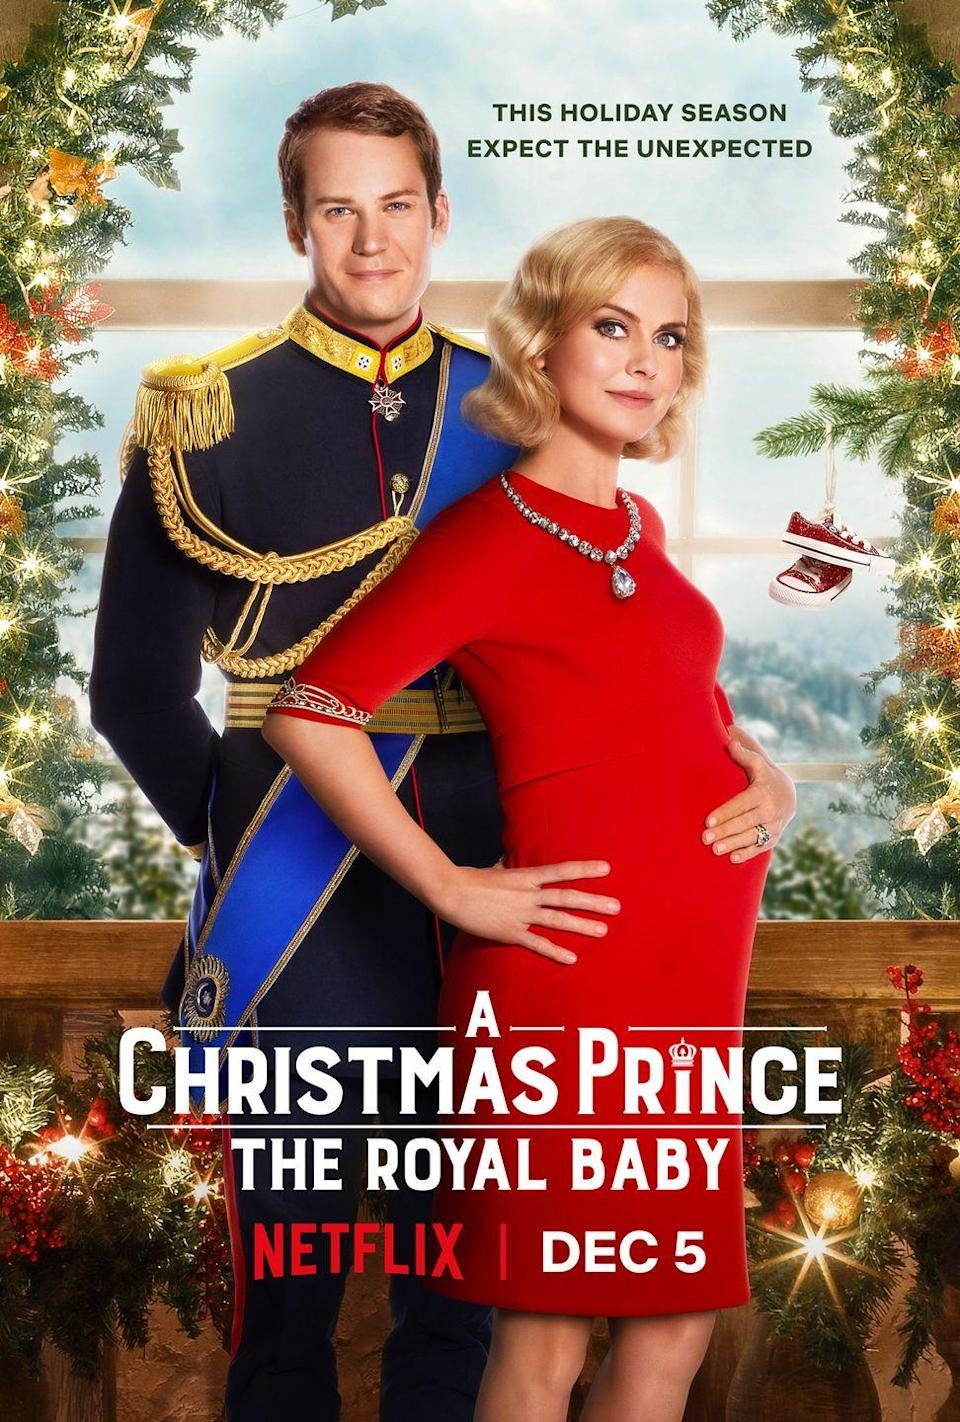 """<p>The fan-favorite Christmas Prince franchise continues with the third installment, <em>The Royal Baby</em>. As Queen Amber welcomes a baby to the royal family, she also discovers a mystery in the monarchy.</p><p><a class=""""link rapid-noclick-resp"""" href=""""https://www.netflix.com/title/81029841"""" rel=""""nofollow noopener"""" target=""""_blank"""" data-ylk=""""slk:STREAM NOW"""">STREAM NOW</a></p>"""